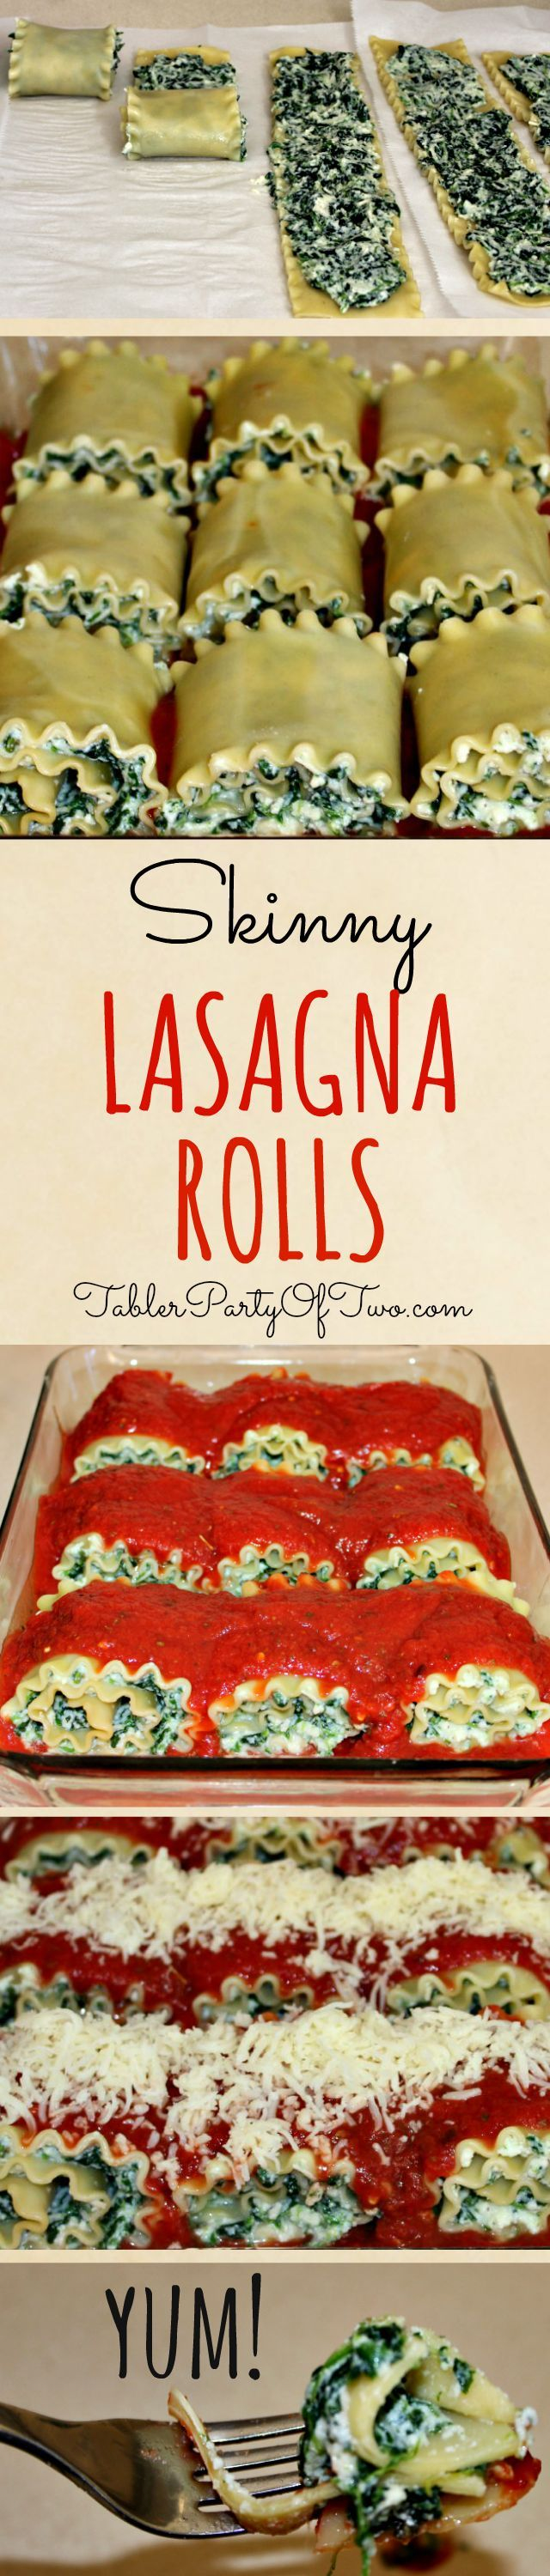 """These Skinny Lasagna Rolls are really easy to make and are a """"no-guilt"""" way to enjoy the guilty pleasure o"""